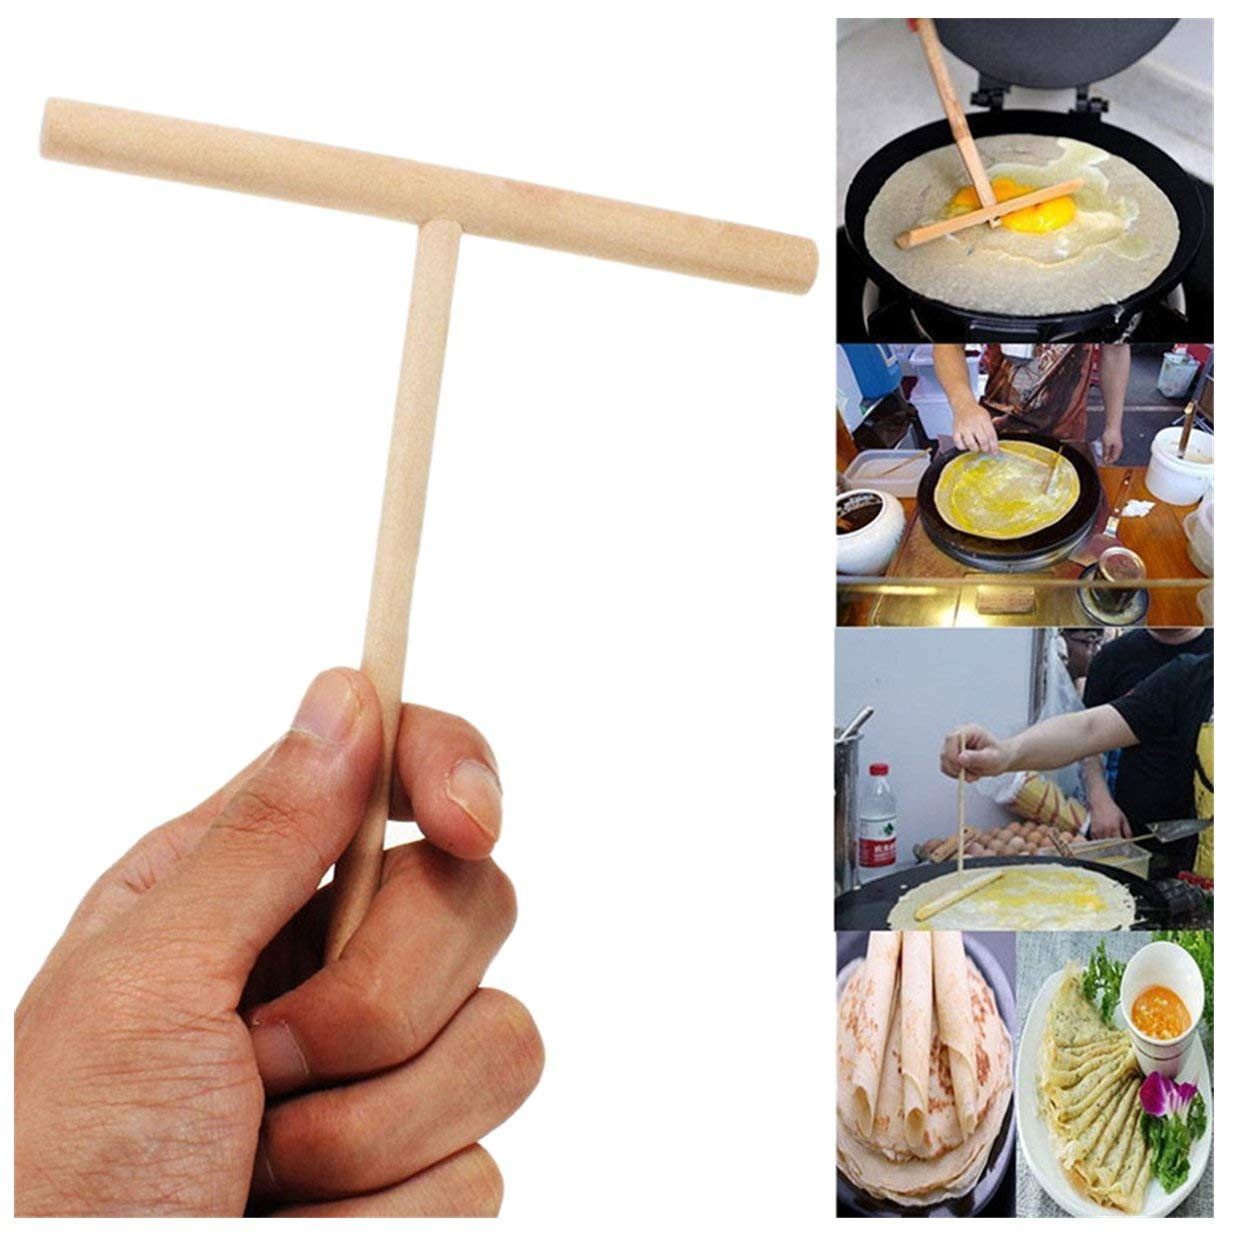 Queenbox 5x7Inch Wooden Crepe Spreader Pancake Batter Stick Spreader Maker Home Kitchen Tool